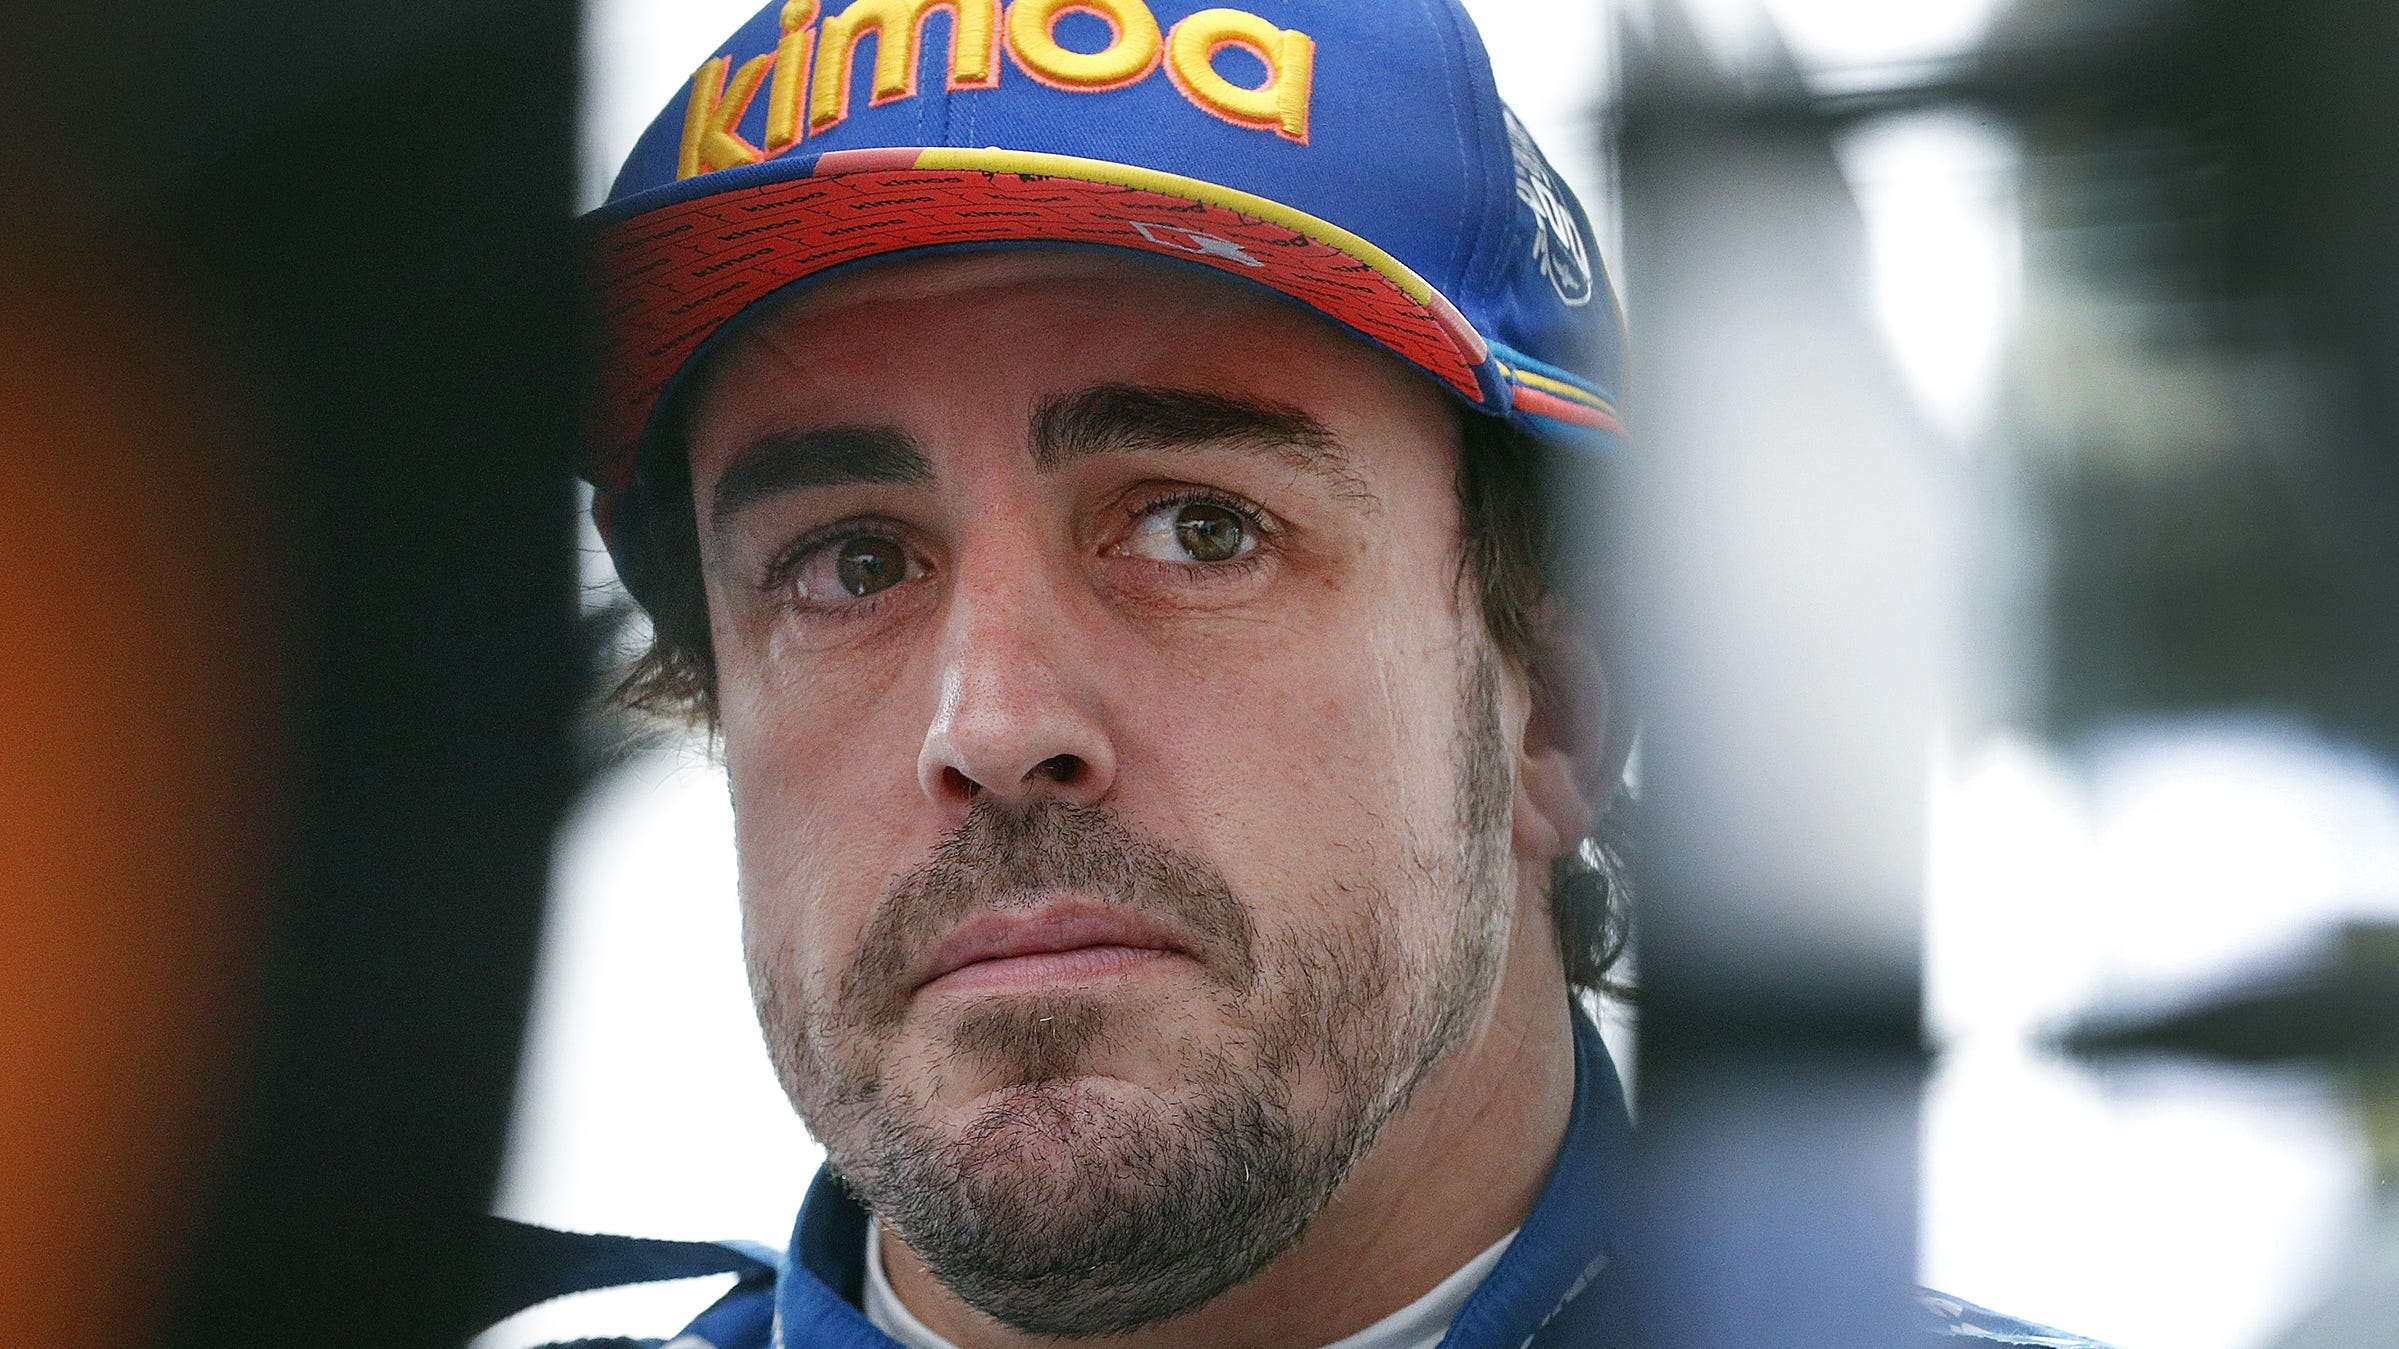 Fernando Alonso's Proposed 2020 Indy 500 Ride With